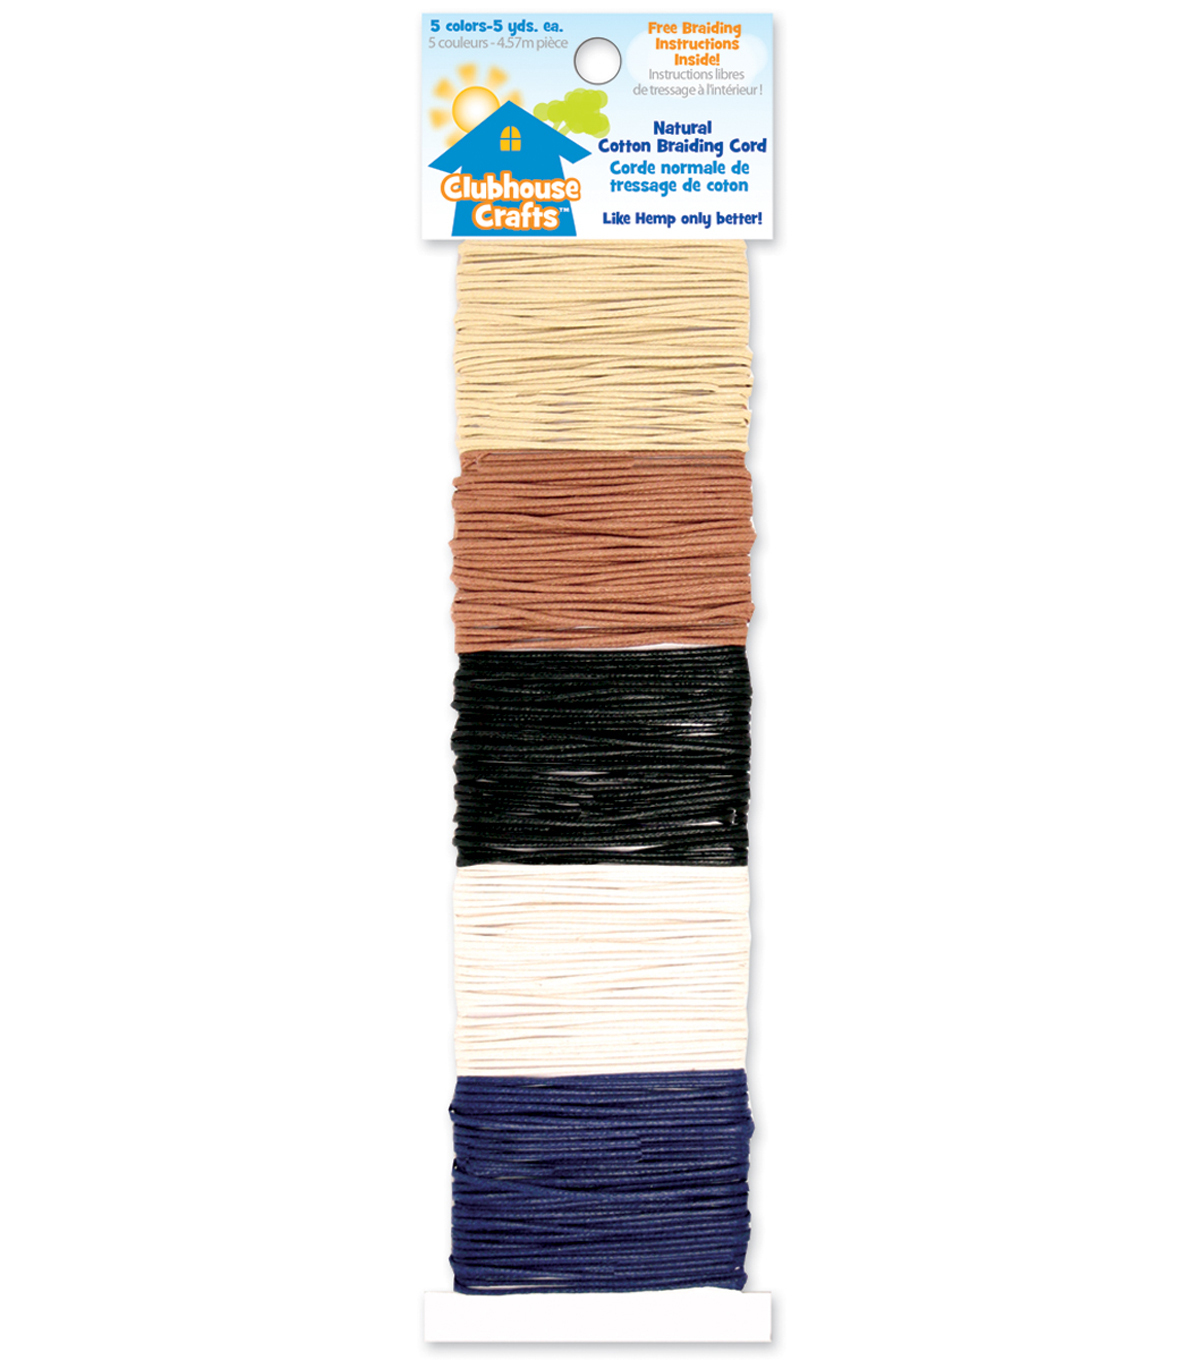 Clubhouse Crafts Cotton Braiding Cord-Natural Colors